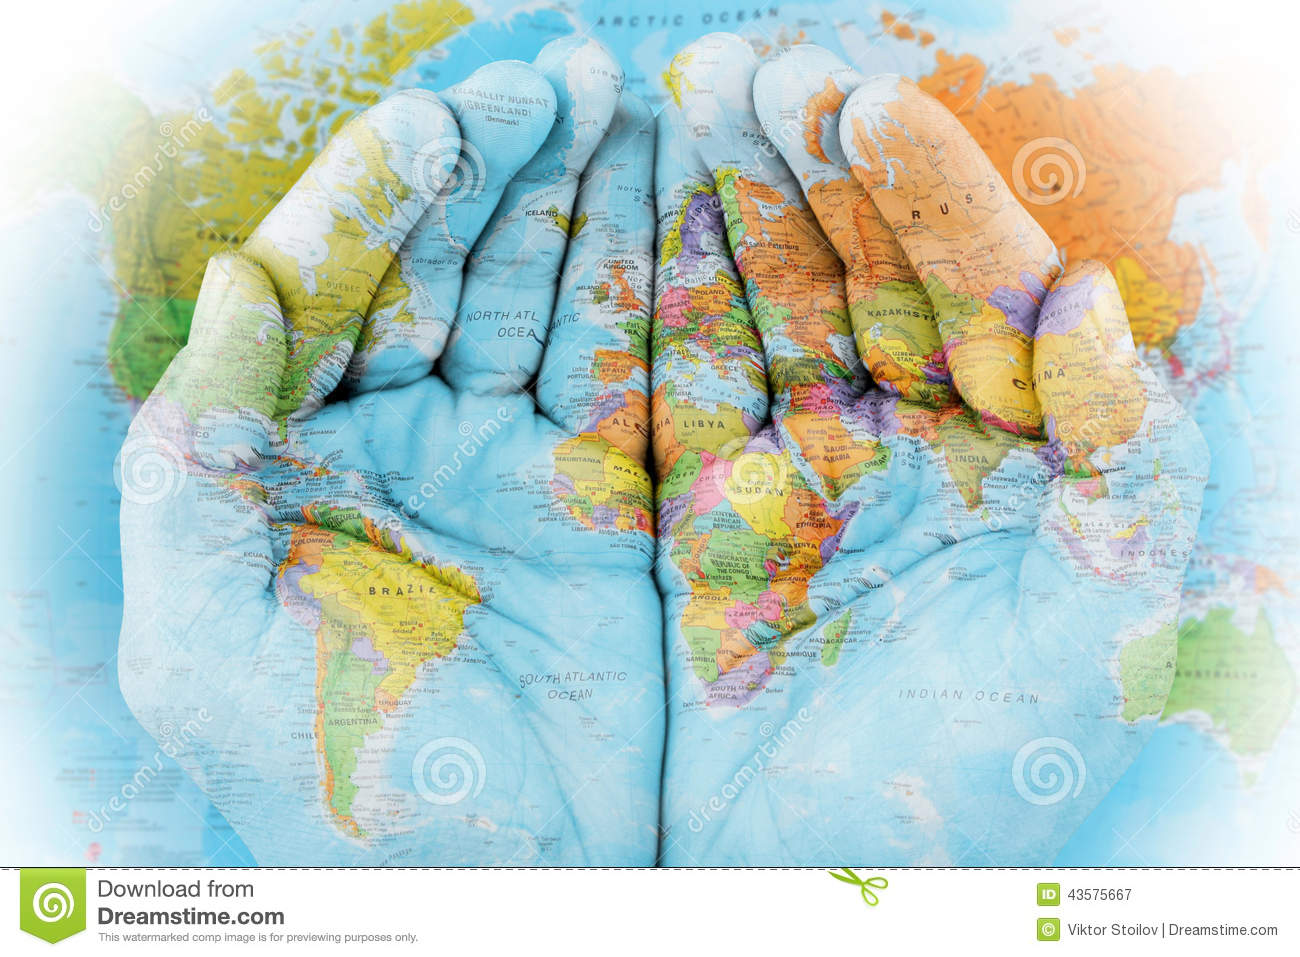 World Map On Hands.The World In Our Hands Stock Image Image Of Conceptual 43575667